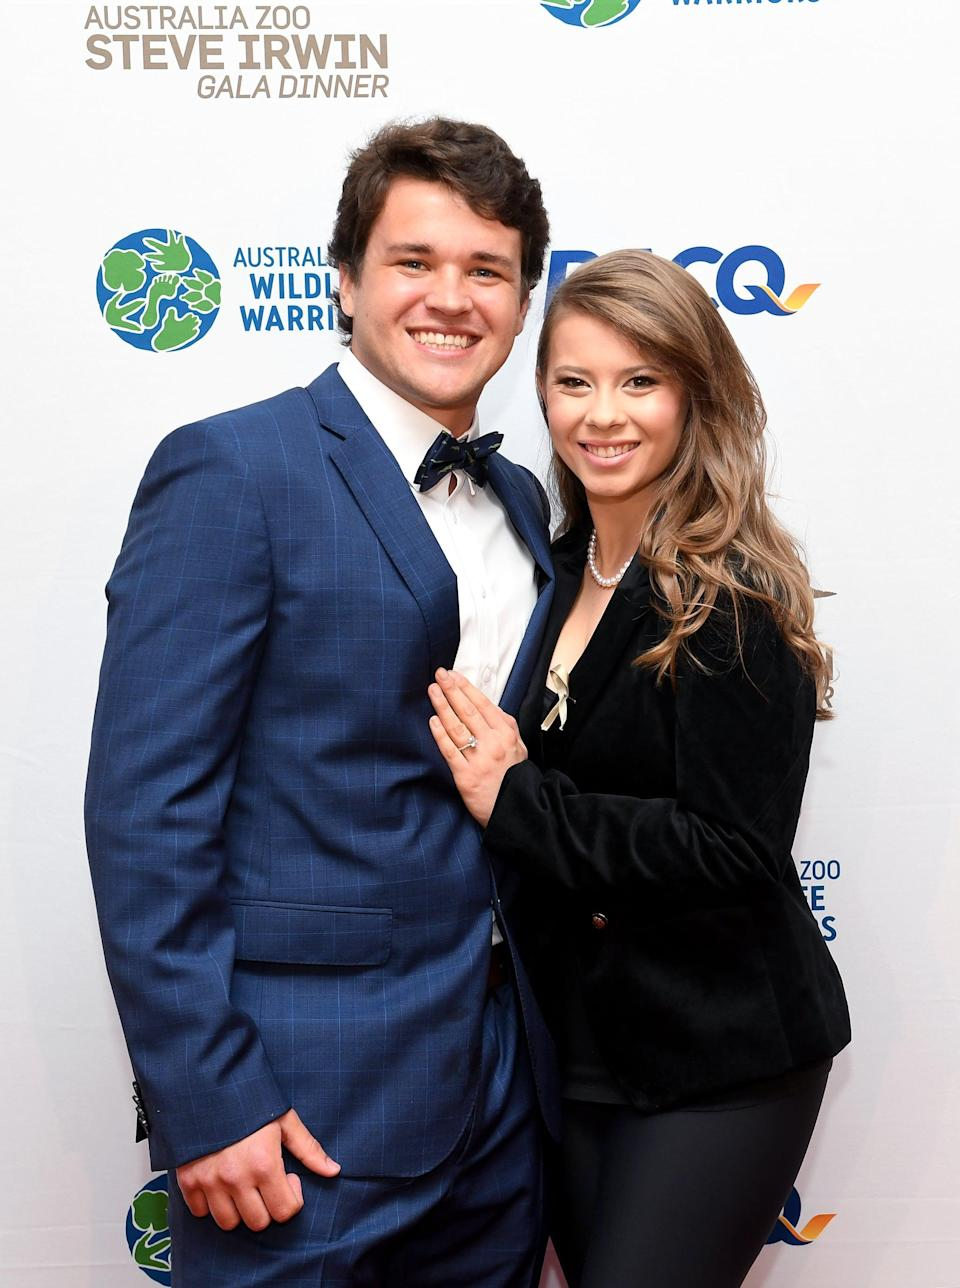 "<p>Bindi announced her <a href=""https://www.popsugar.com/celebrity/Bindi-Irwin-Chandler-Powell-Engaged-46415797"" class=""link rapid-noclick-resp"" rel=""nofollow noopener"" target=""_blank"" data-ylk=""slk:engagement to longtime boyfriend Chandler"">engagement to longtime boyfriend Chandler</a> in July 2019 on the same day as her 21st birthday. ""On my birthday I said 'yes' and 'forever' to the love of my life,"" she wrote in an Instagram post. ""I'm so looking forwarding to spending our forever together as your wife. Here's to a lifetime of friendship, purpose and unconditional love. - Now let's get married already!"" The two <a href=""https://people.com/tv/bindi-irwin-engaged-chandler-powell/"" class=""link rapid-noclick-resp"" rel=""nofollow noopener"" target=""_blank"" data-ylk=""slk:first met in November 2013"">first met in November 2013</a> when Bindi was Chandler's tour guide during one of his trips to Australia Zoo.</p>"